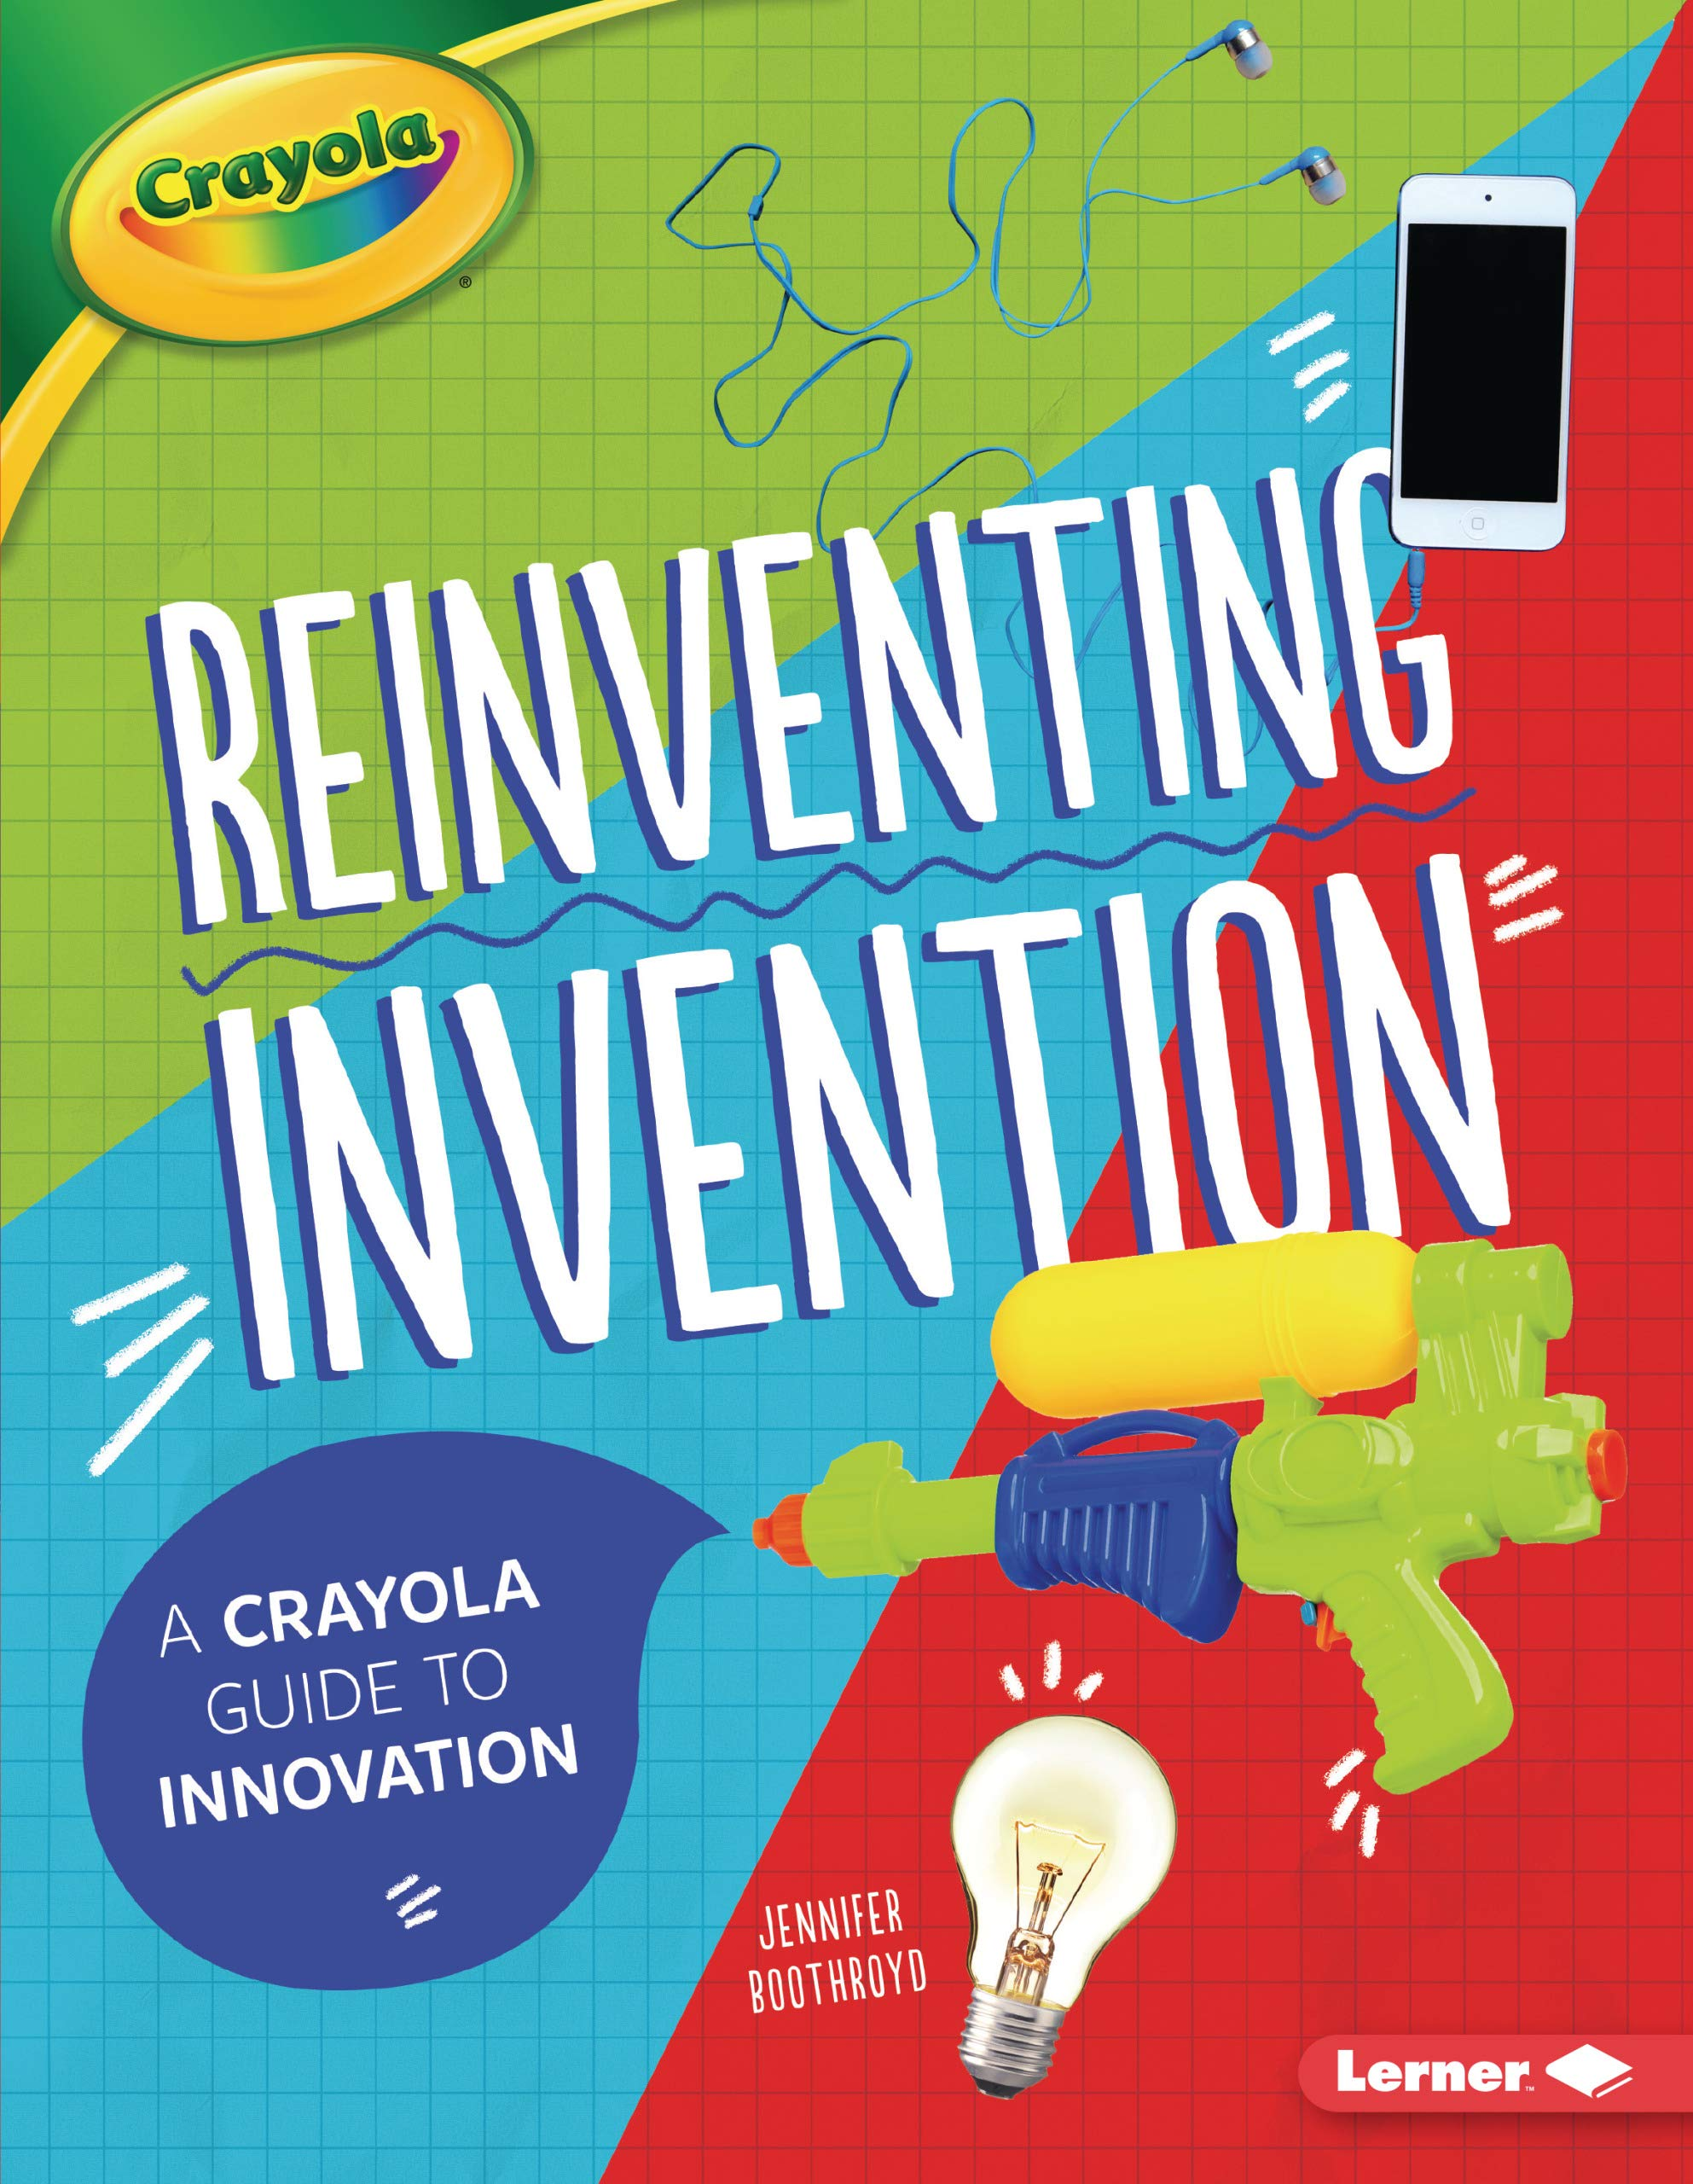 Reinventing Invention: A Crayola Guide to Innovation